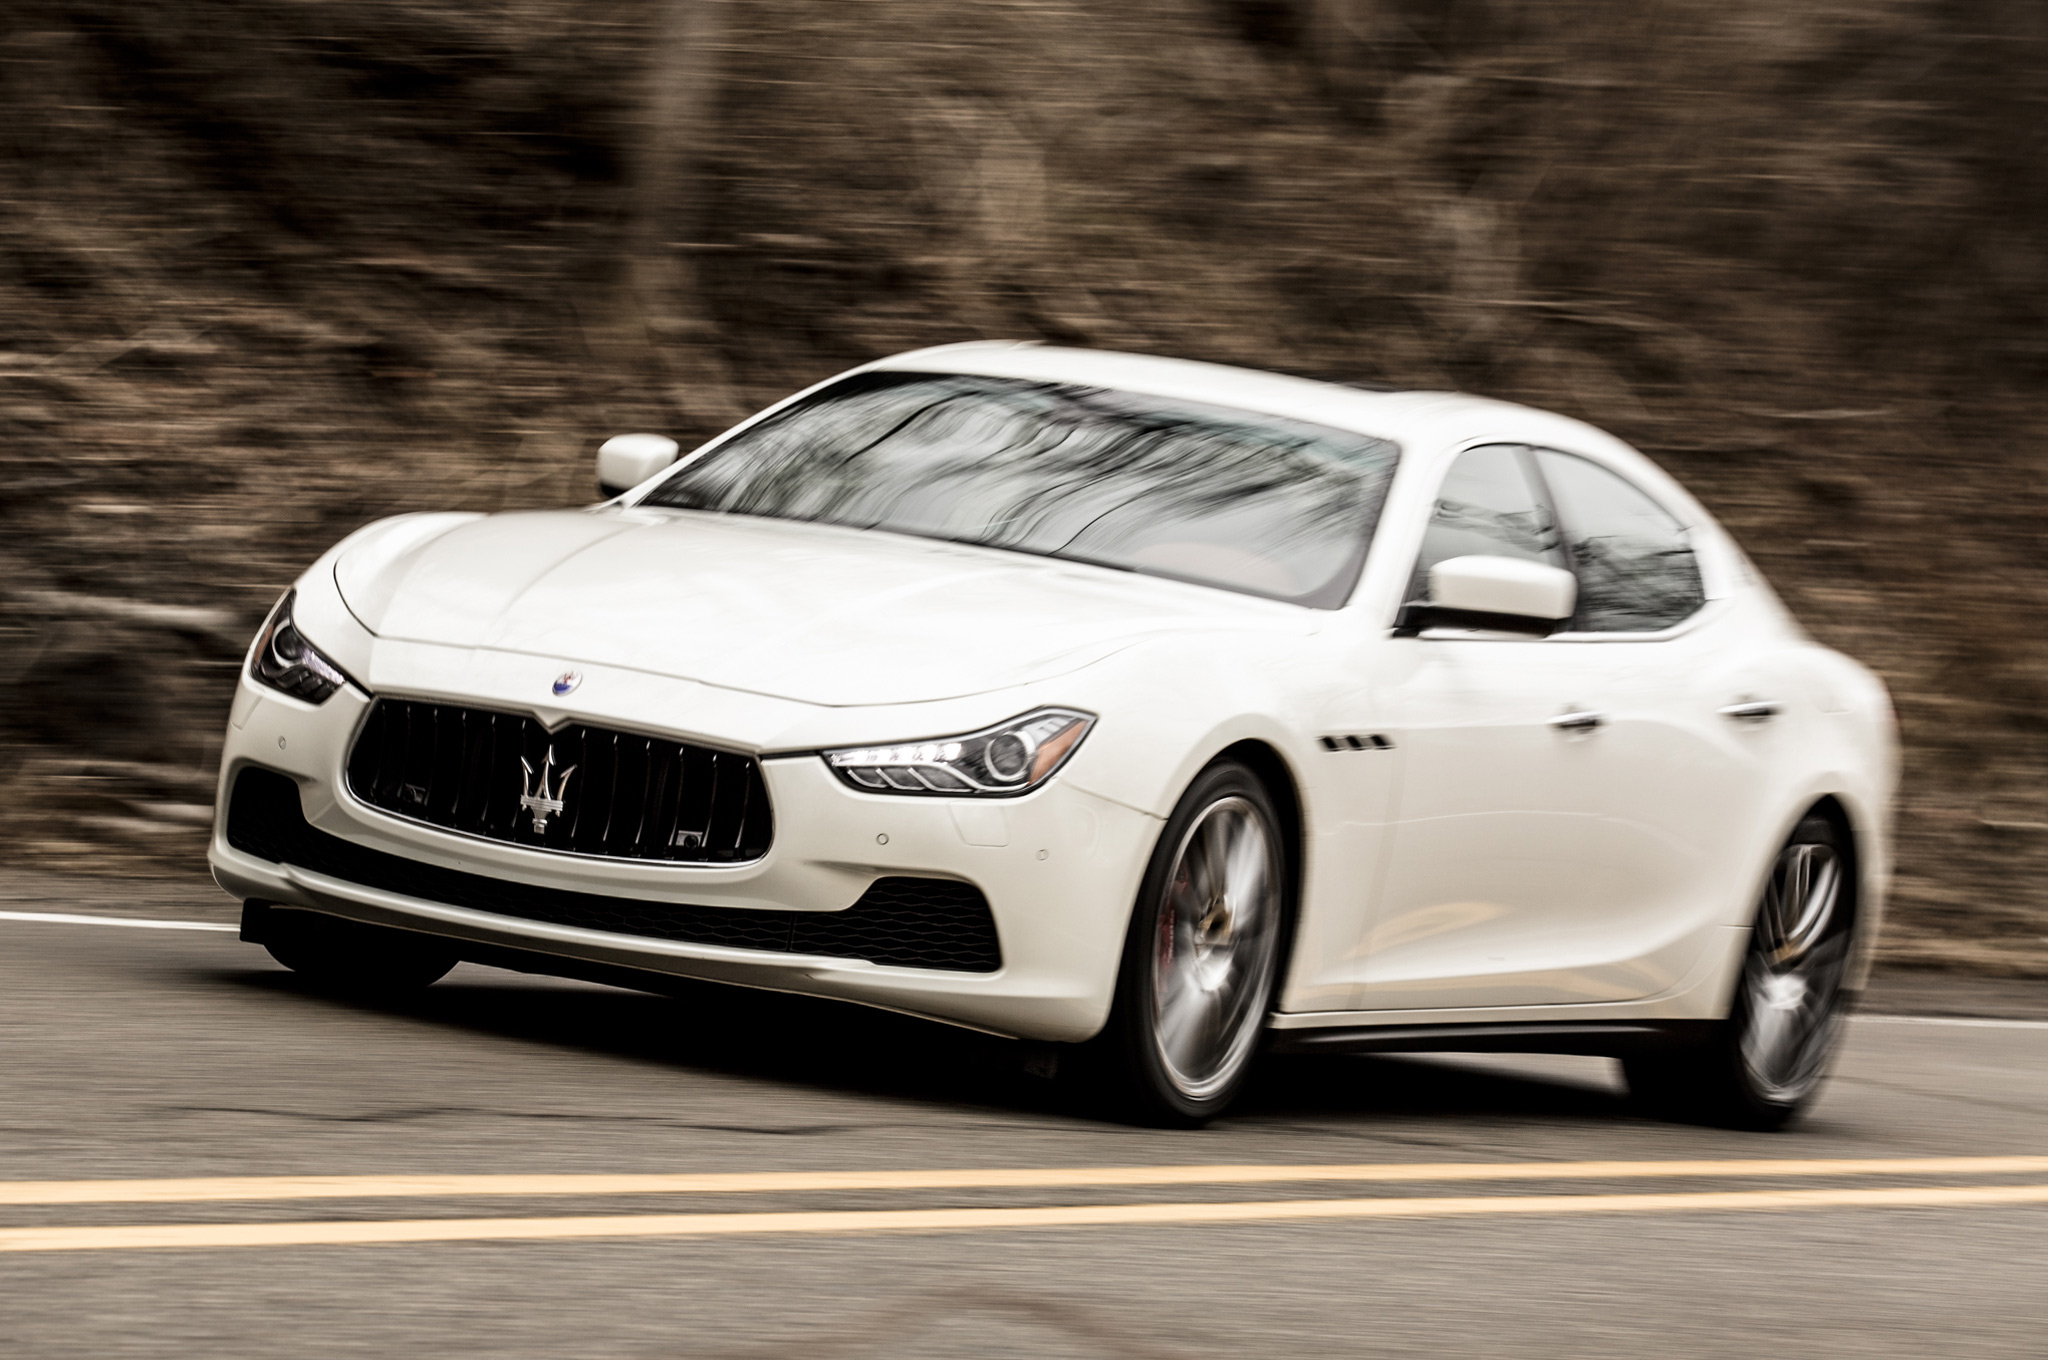 Maserati Global Sales Not to Exceed 75 000 Units a Year by 2018